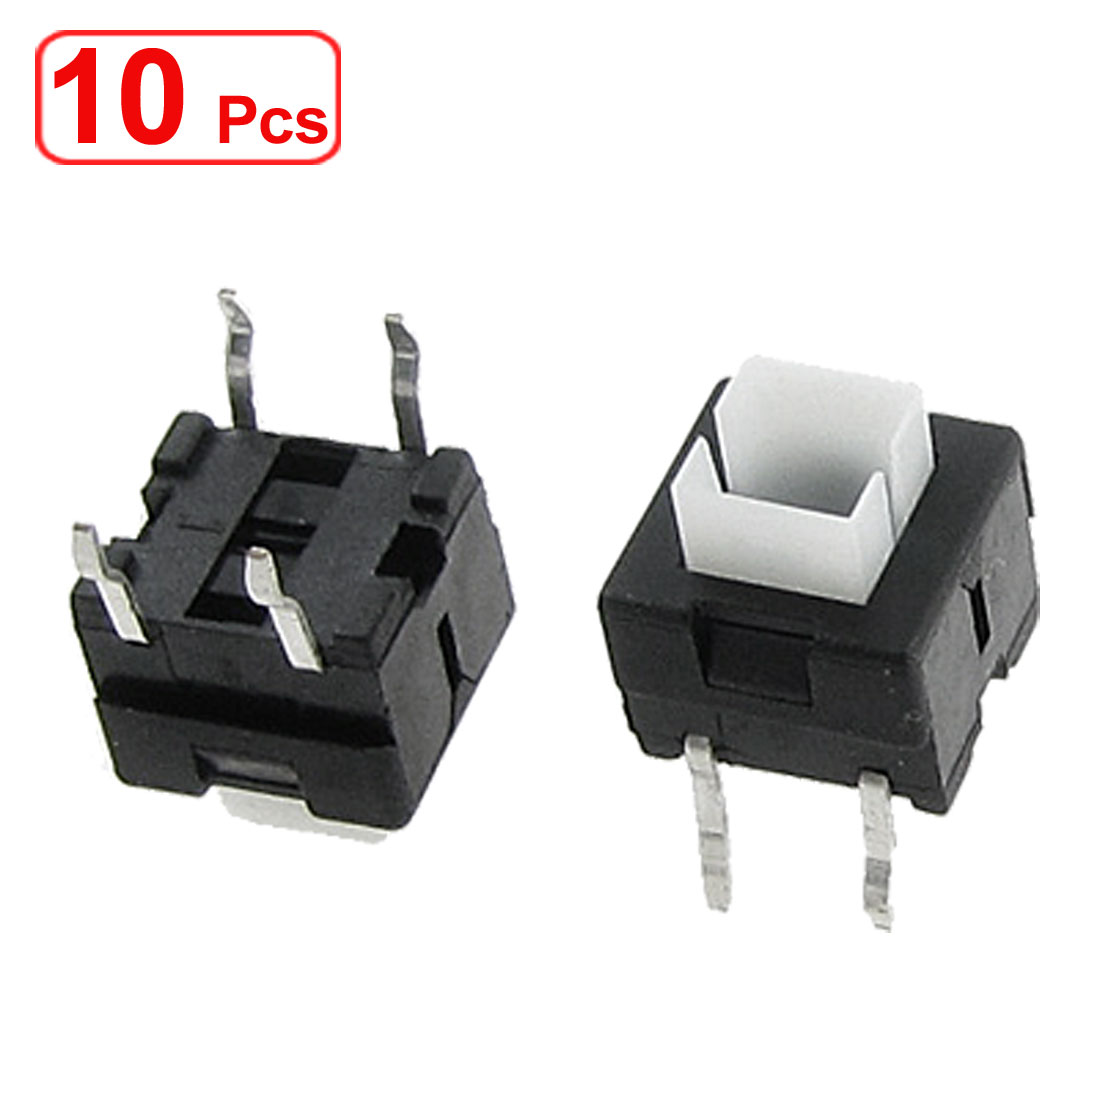 10 Pcs Momentary Action 4 Pin Push Button Tact Switch 8mm x 8mm